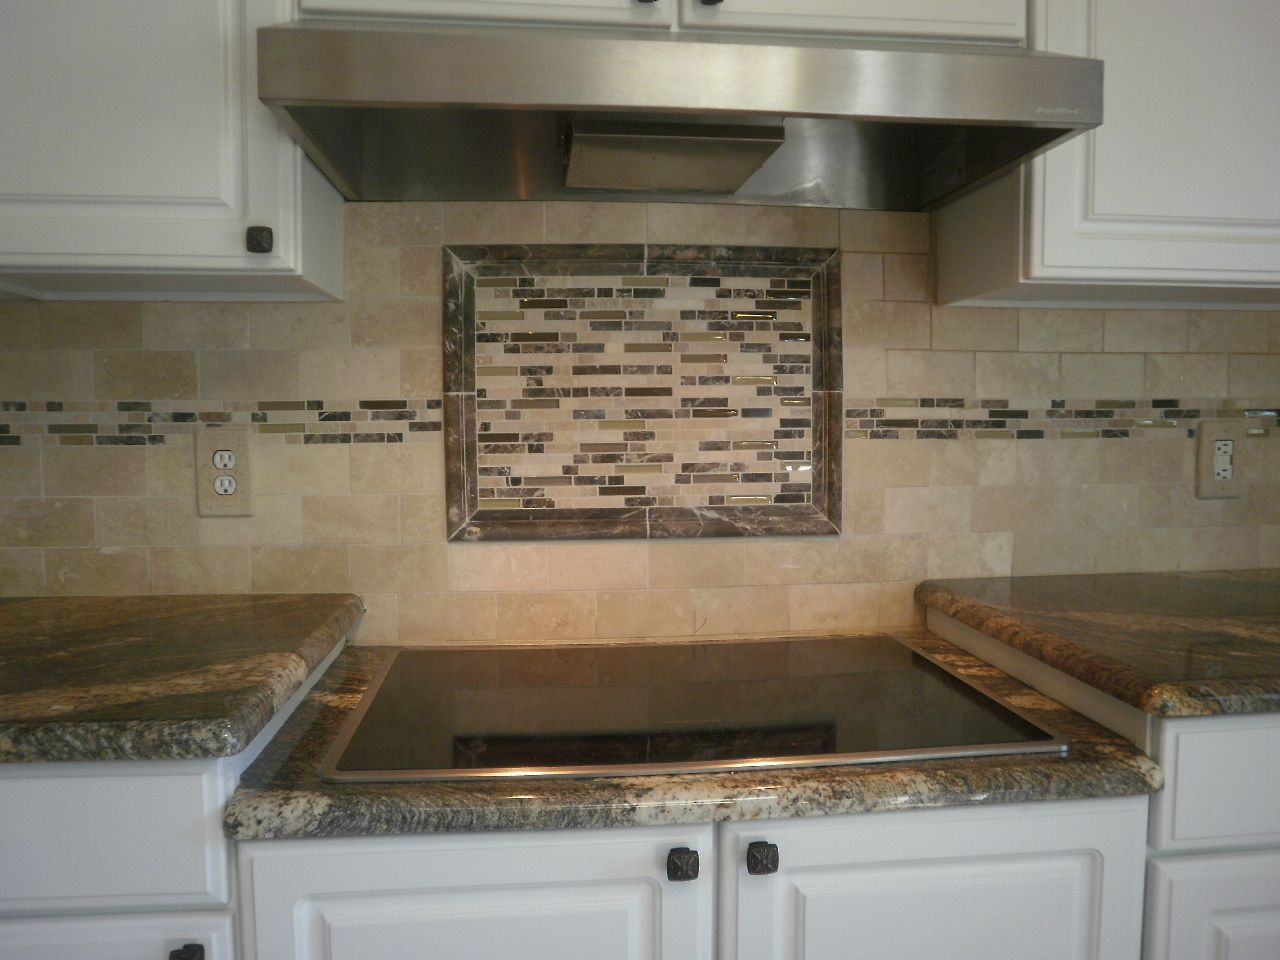 image of kitchen backsplash ideas with granite countertops hanged kitchen backsplash design ideas - Kitchen Backsplash Design Ideas